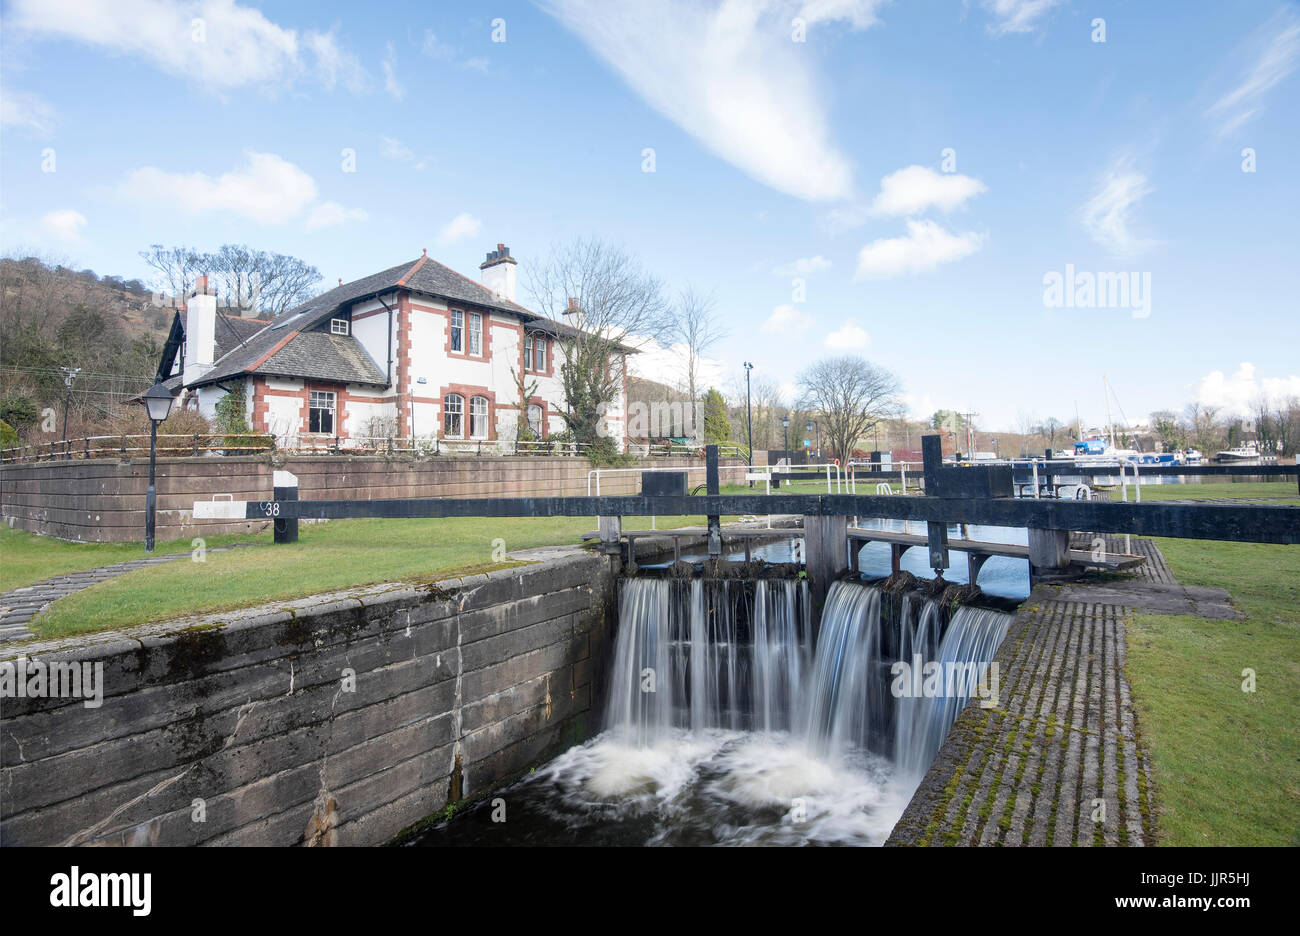 The lock and house at Bowling Harbour/Basin in West Dunbartonshire, Scotland. - Stock Image